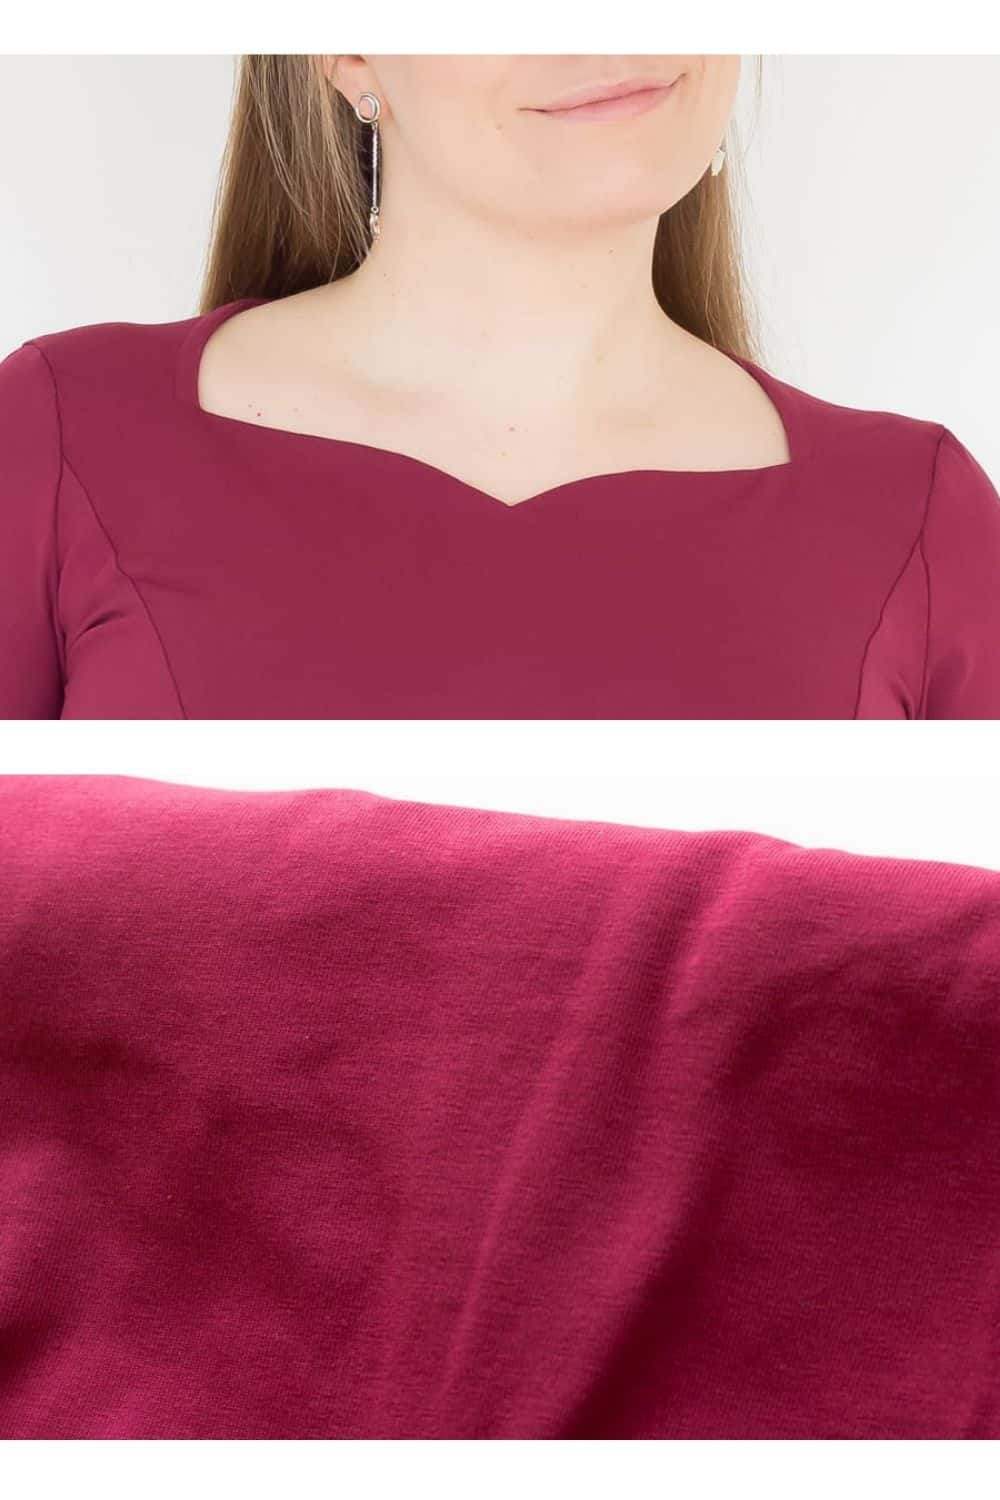 plus size tops for women,